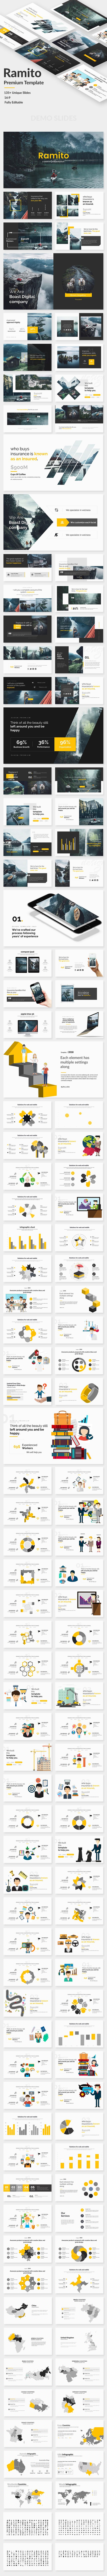 Ramito Creative Powerpoint Template - Creative PowerPoint Templates